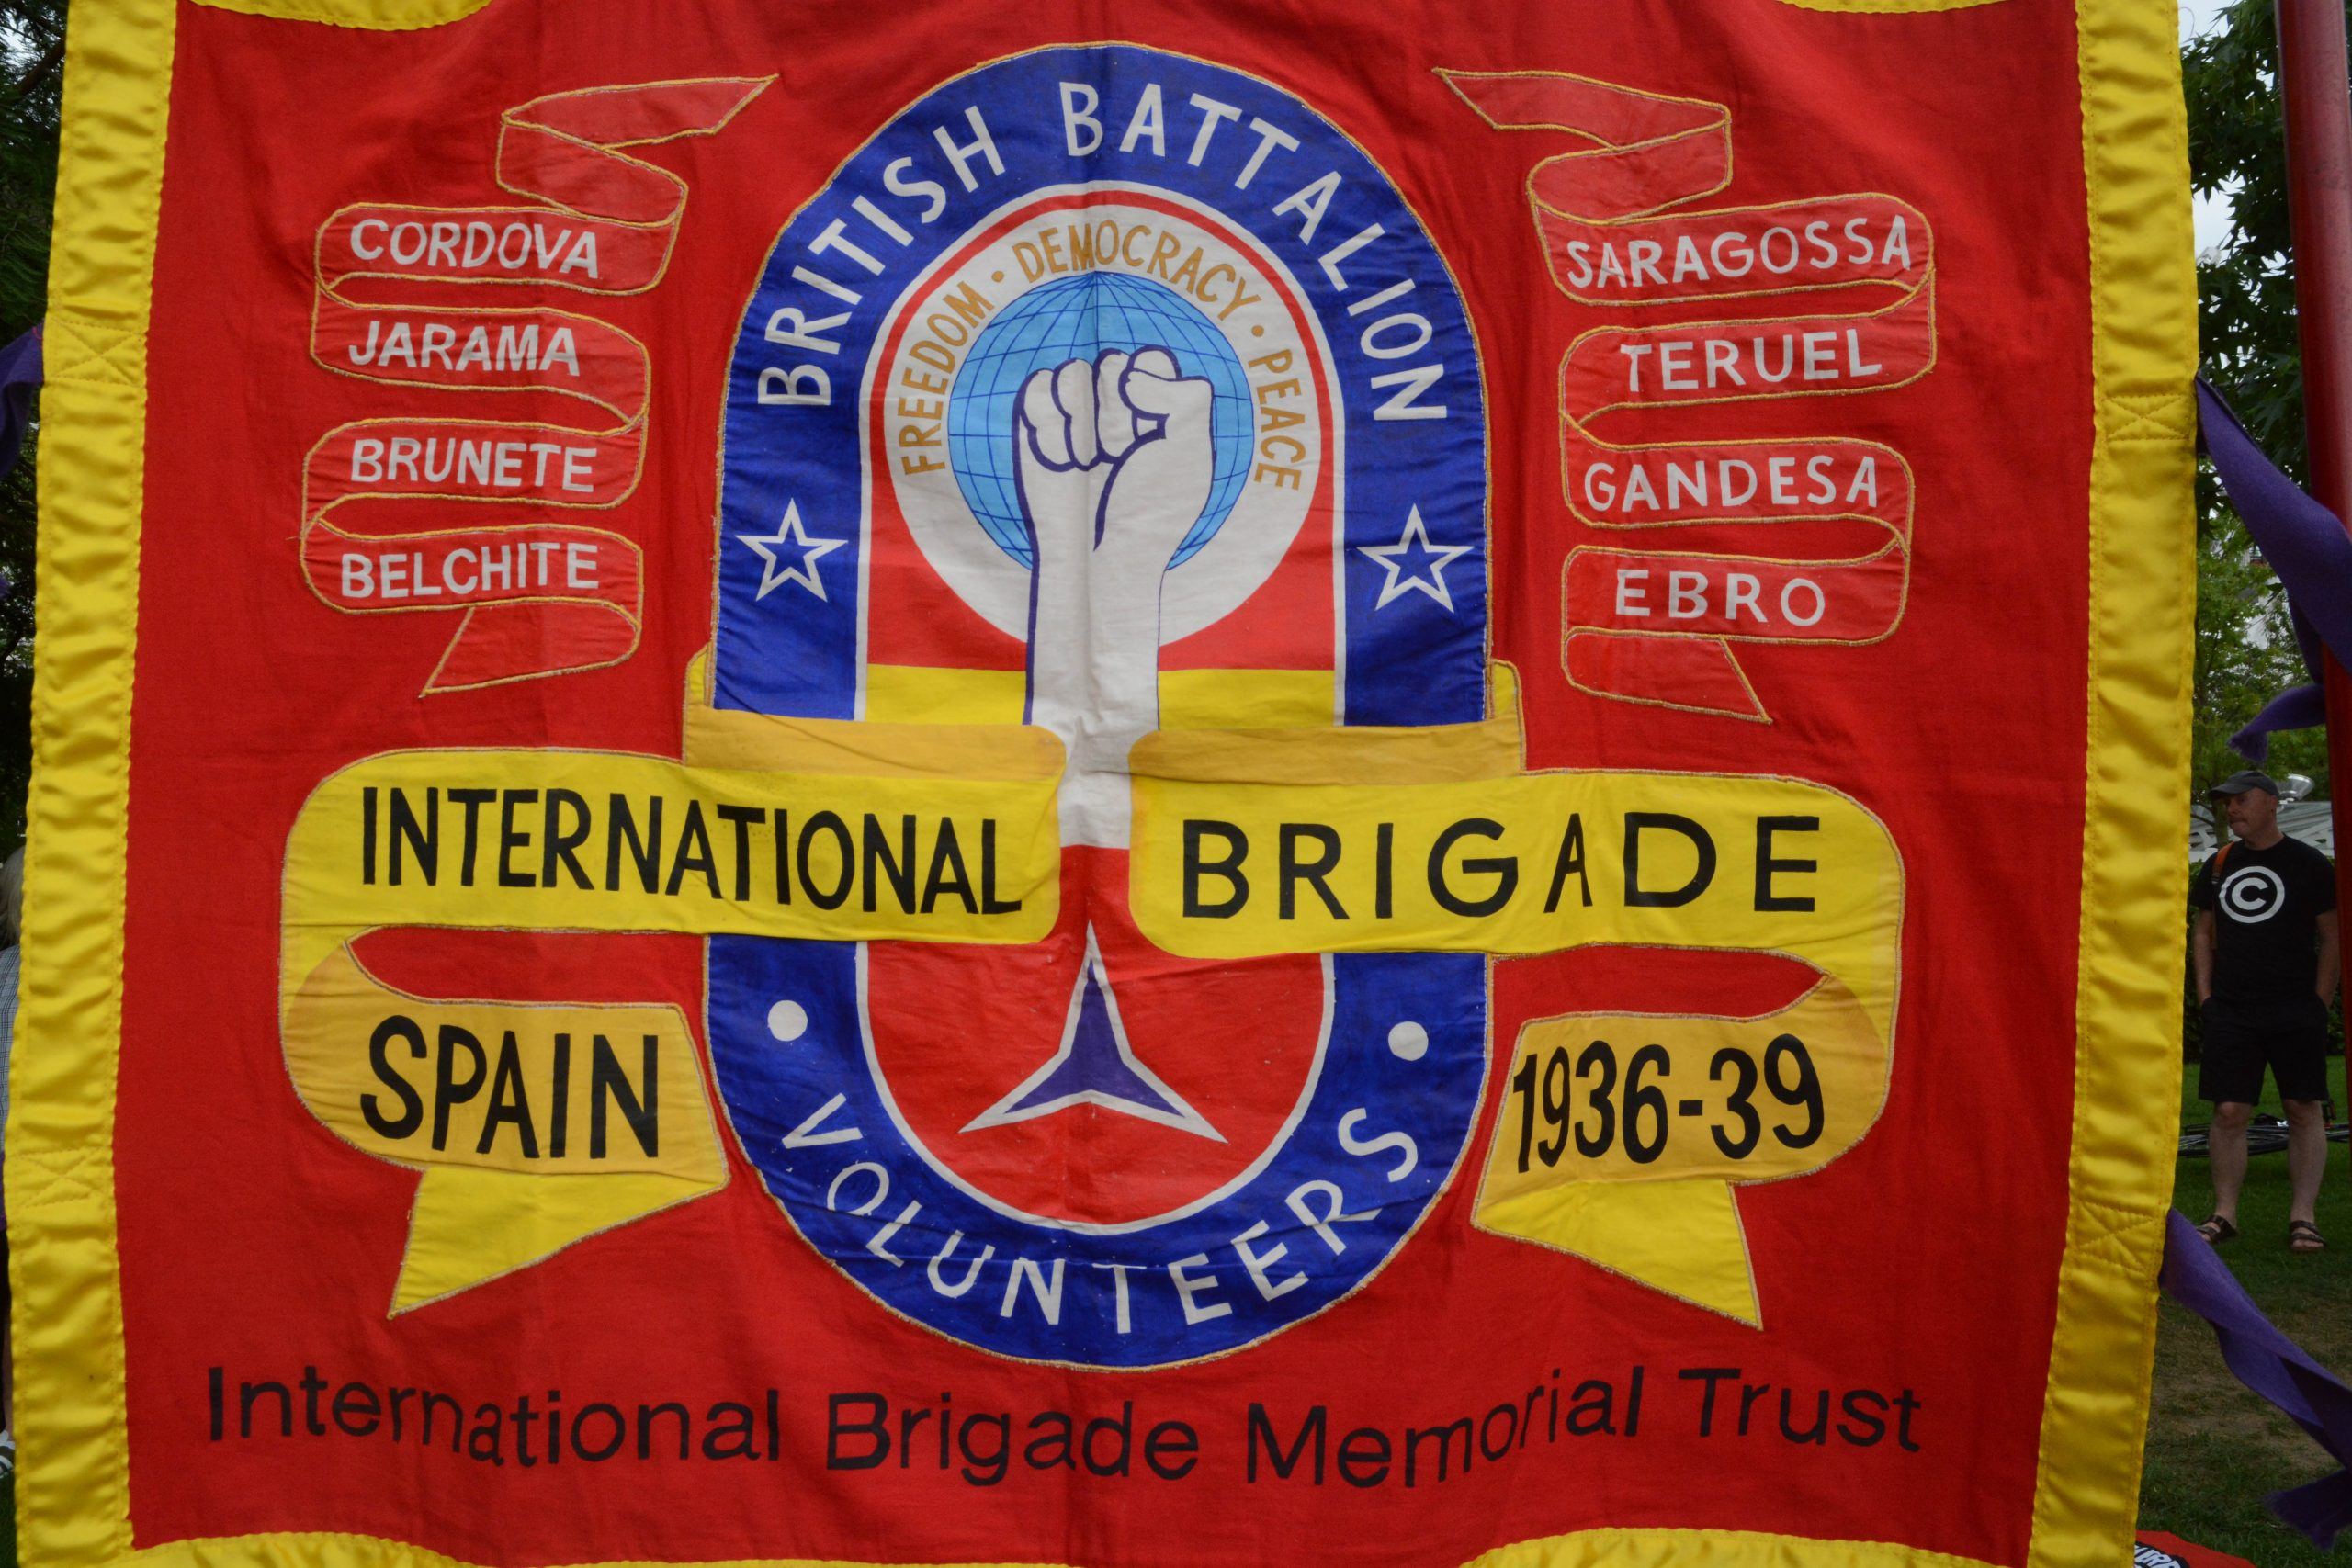 Photograph of the red, blue and yellow International Brigade Memorial Trust flag